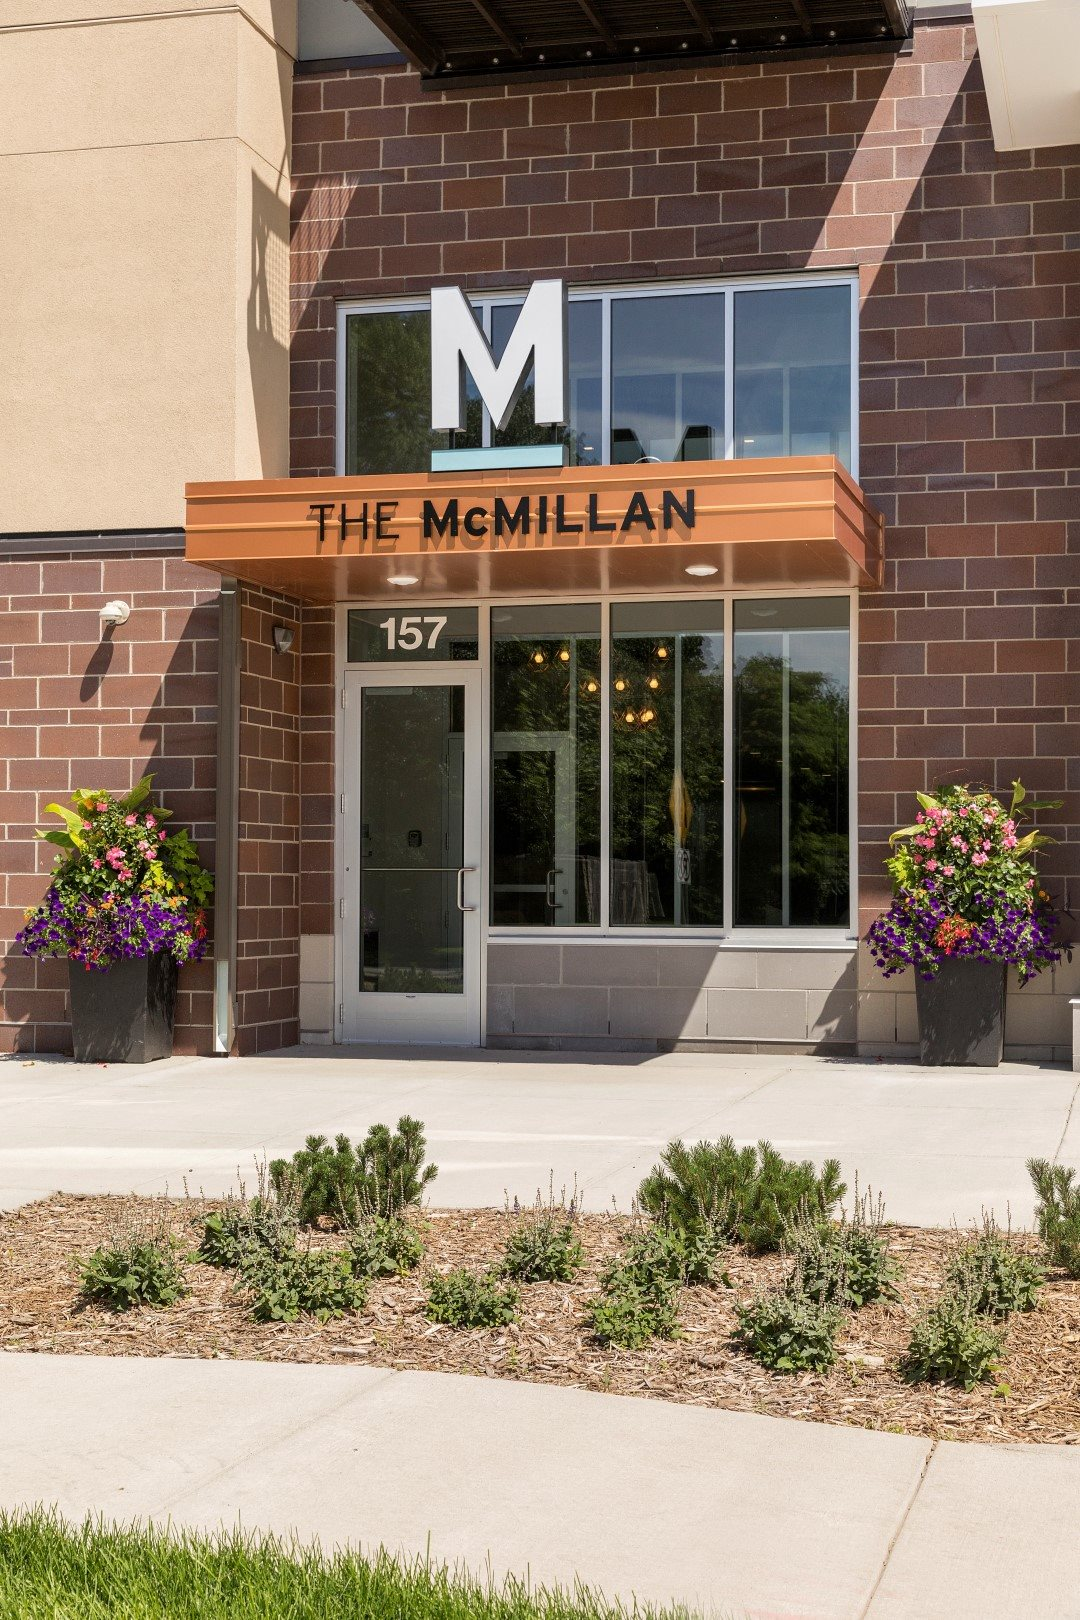 Signage for The McMillan Apartments in Shoreview, MN 55126